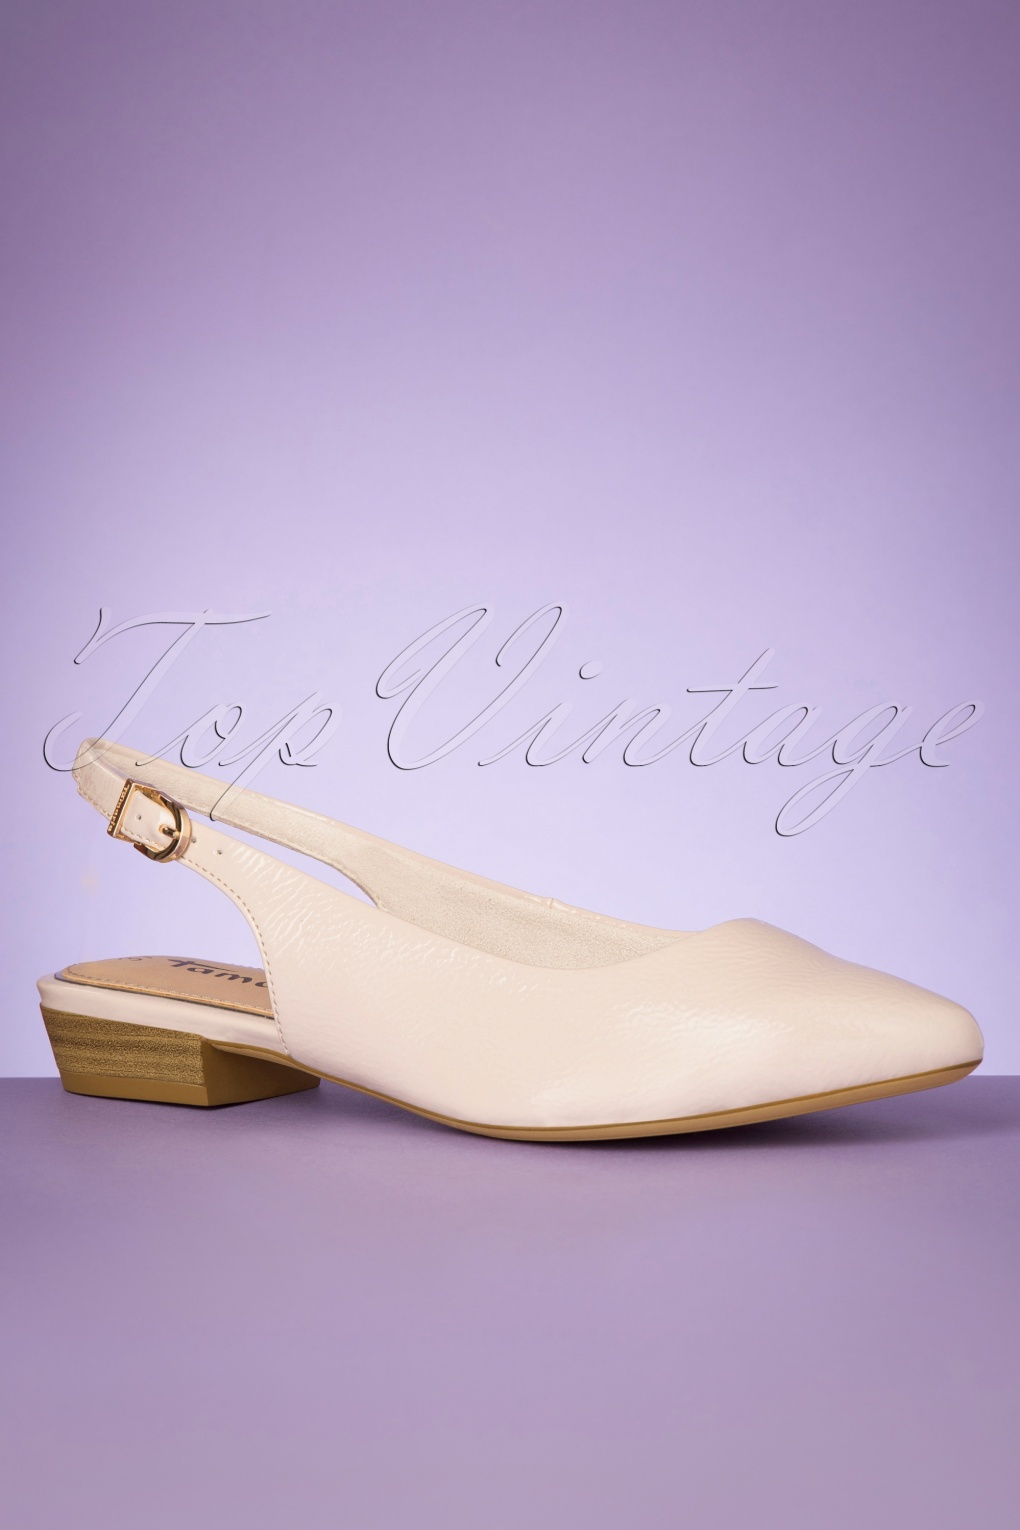 Retro Vintage Flats and Low Heel Shoes 50s Josie Patent Slingback Flats in Ivory £24.95 AT vintagedancer.com